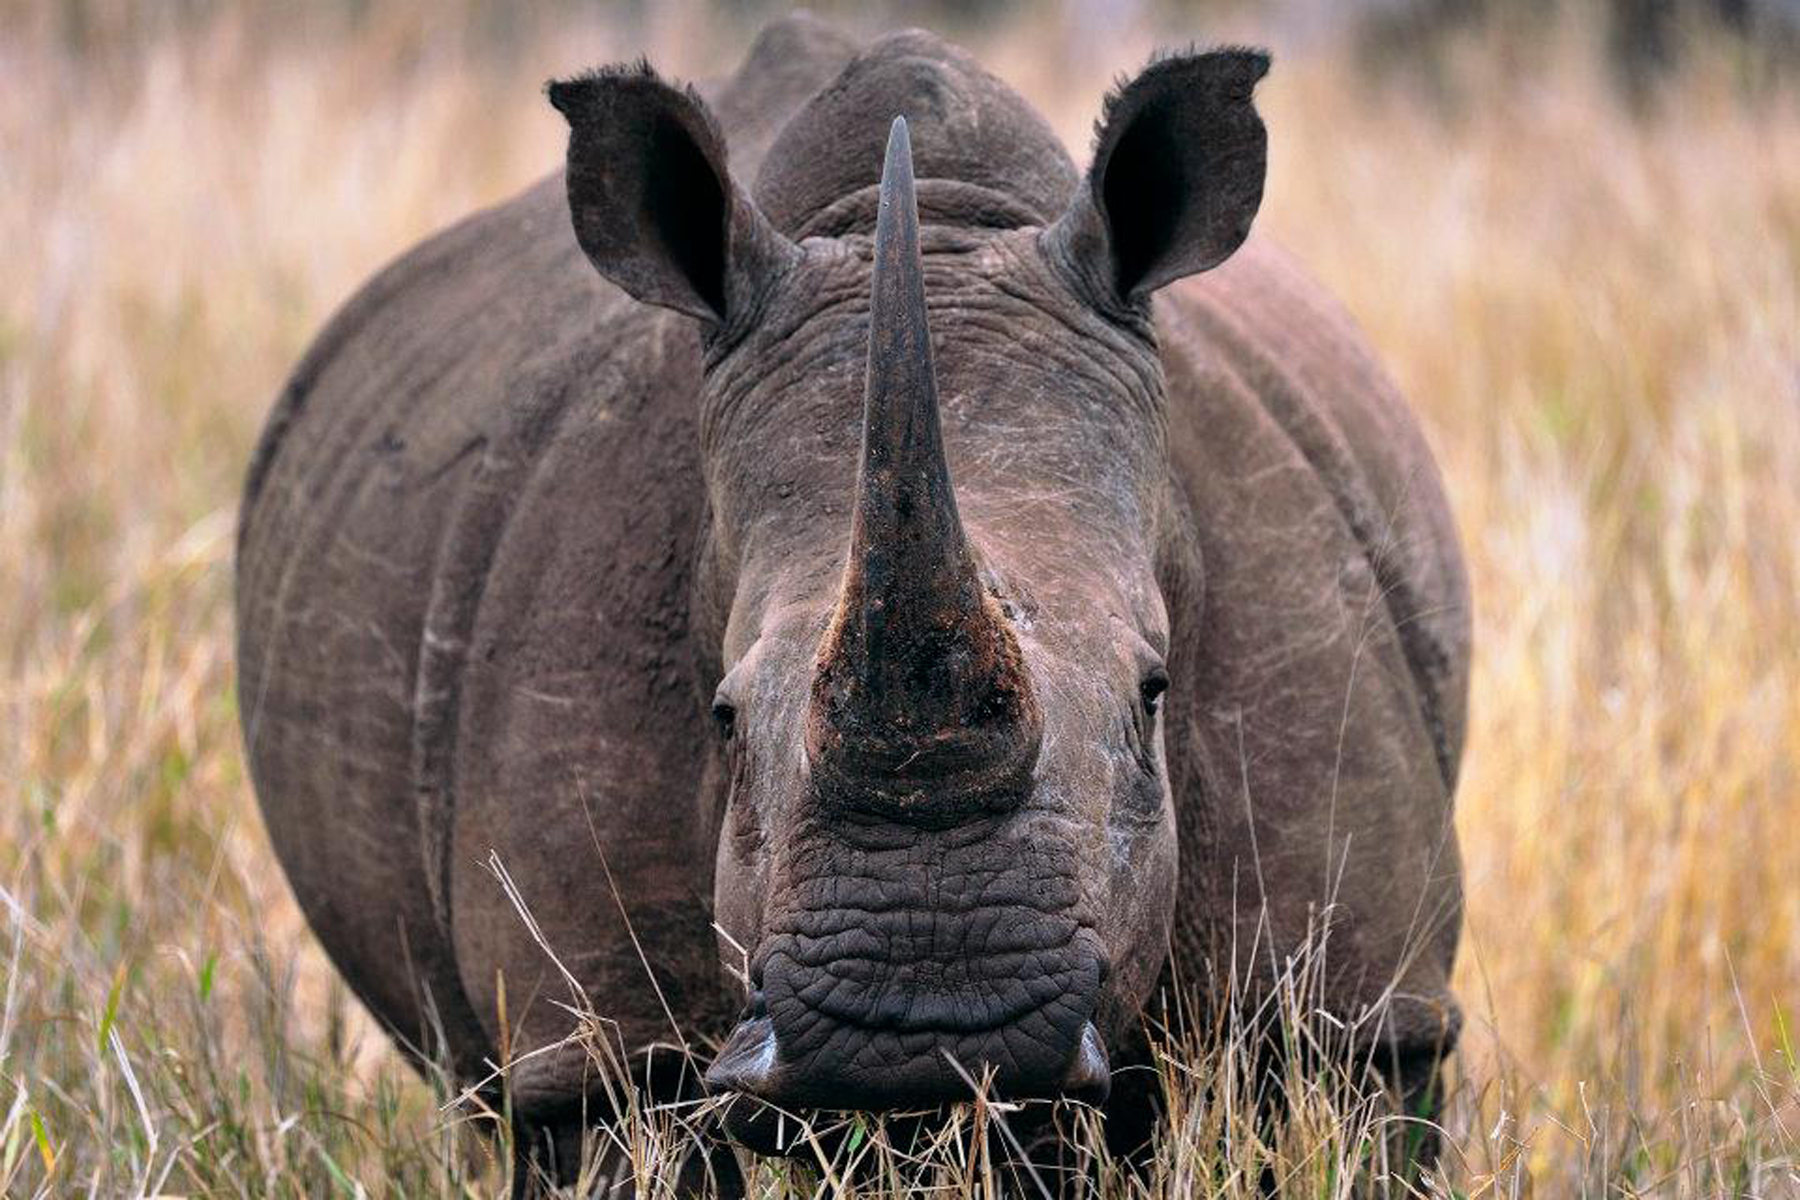 The Black Rhino. Photo Credit: Sub Saharan Volunteers